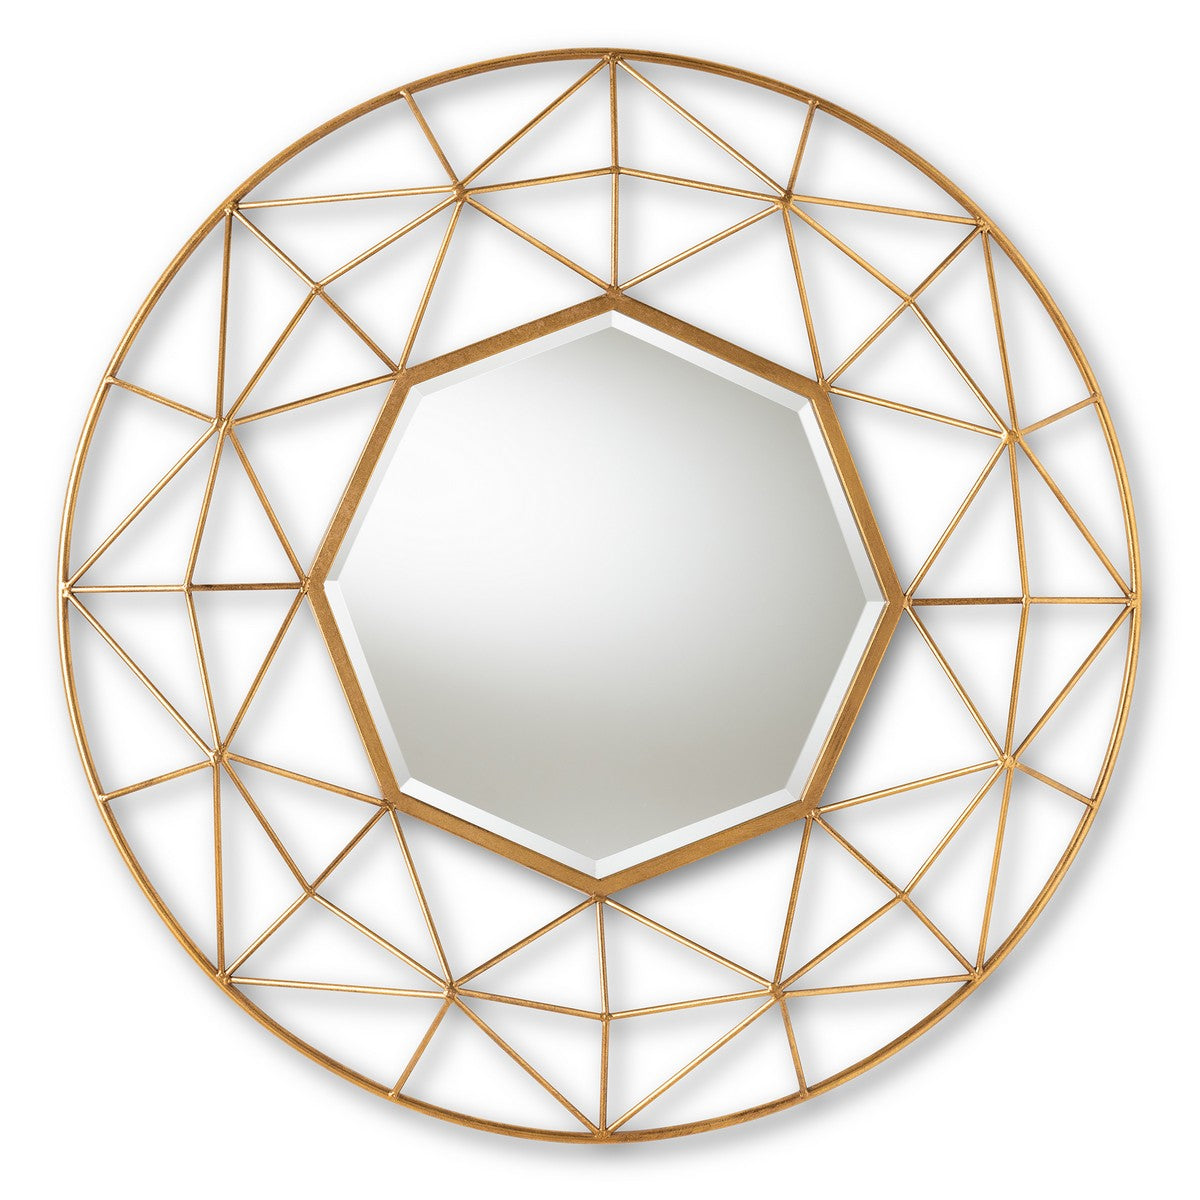 Baxton Studio Astra Modern and Contemporary Gold Finished Geometric Accent Wall Mirror Baxton Studio-mirrors-Minimal And Modern - 1